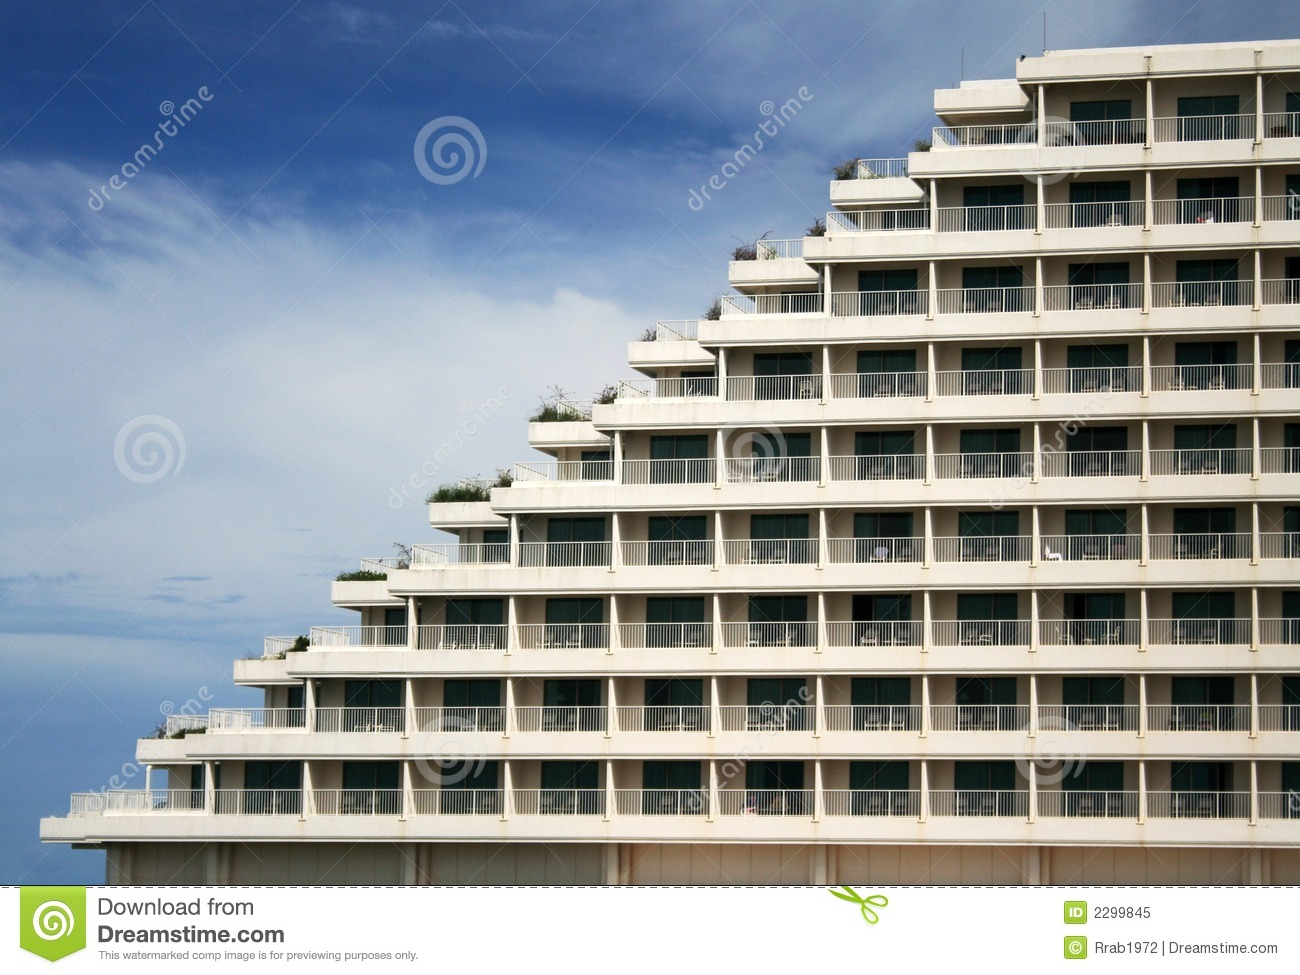 Royalty Free Stock Photo Triangular Building Image2299845 on 2779 Numbers 1 10